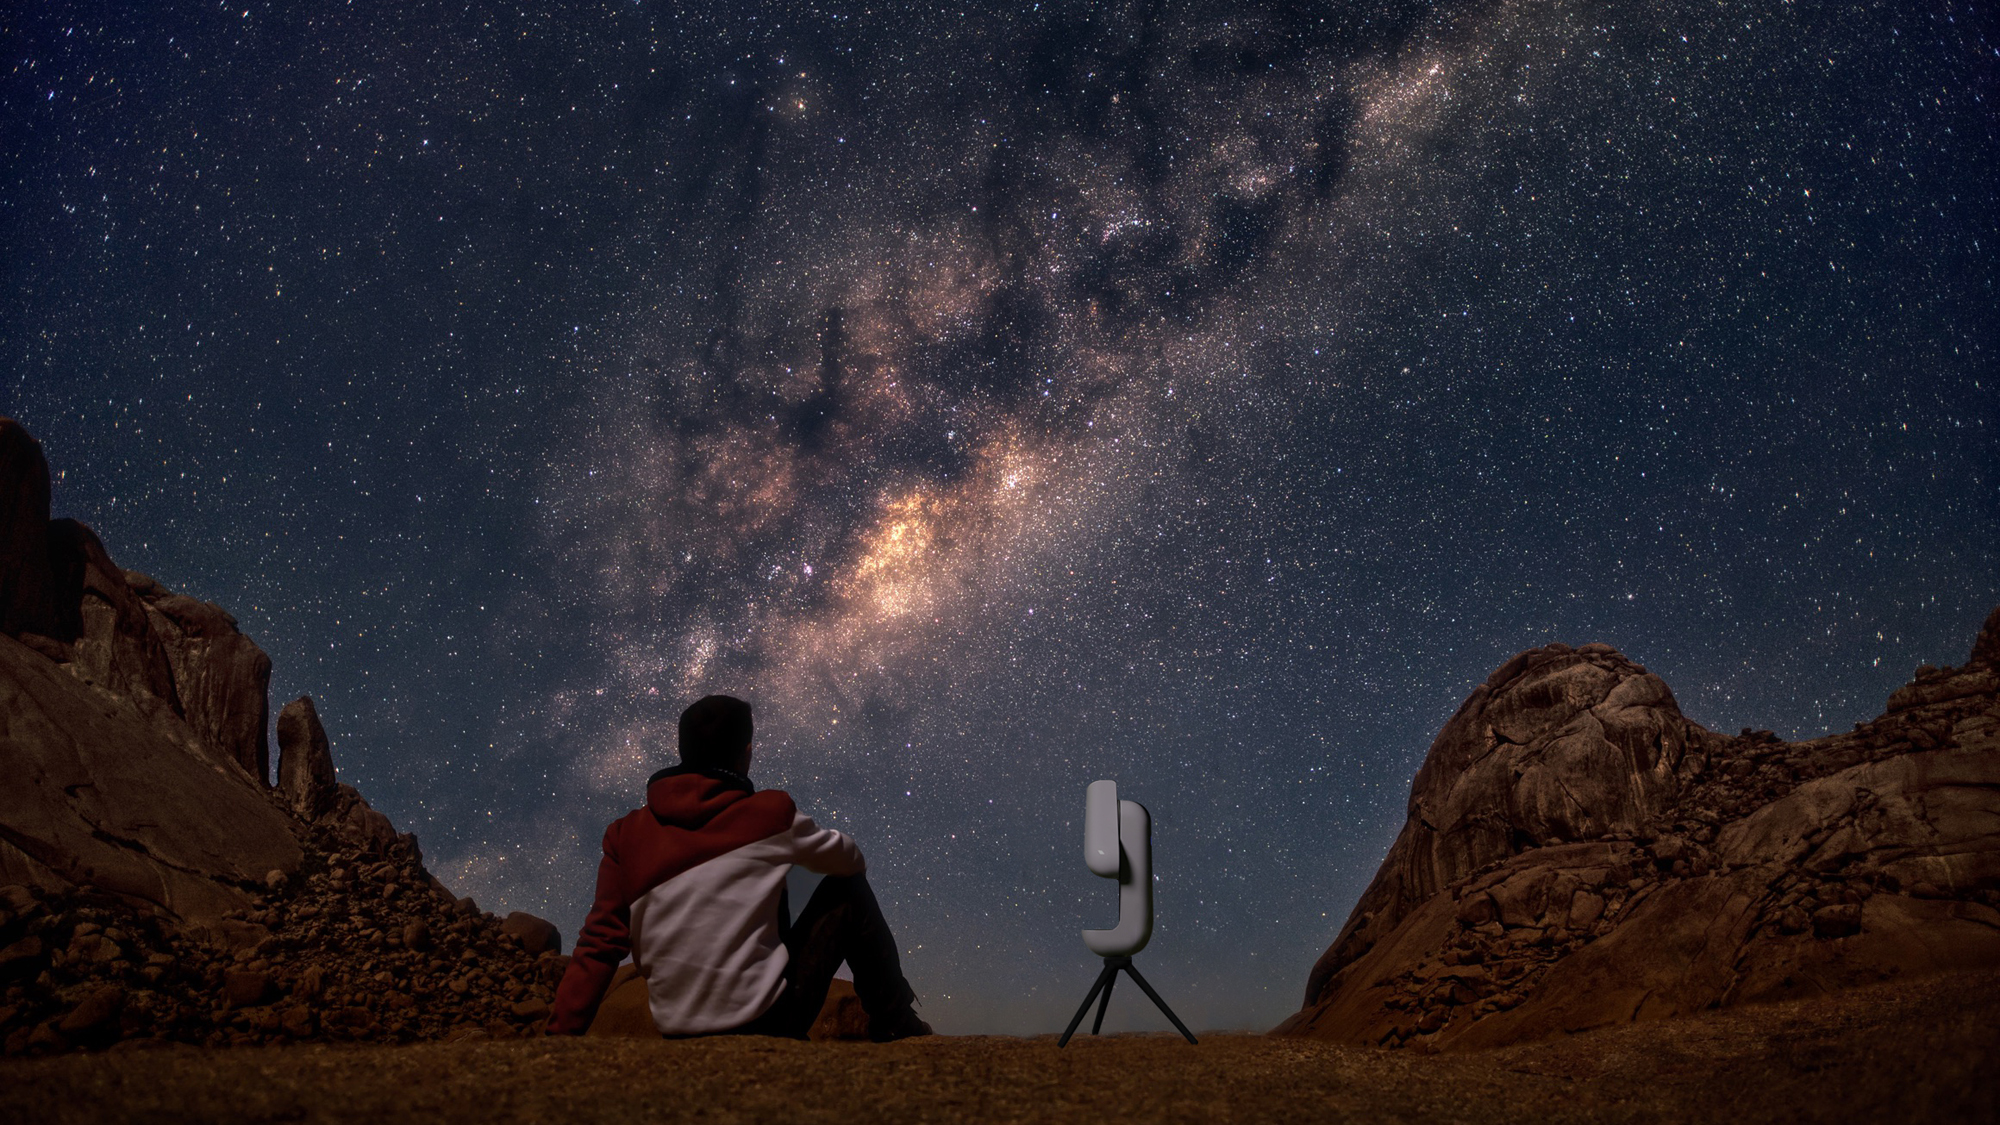 Vespera, a smart telescope to make astrophotography easier, nabs CES 2021 Innovation Award